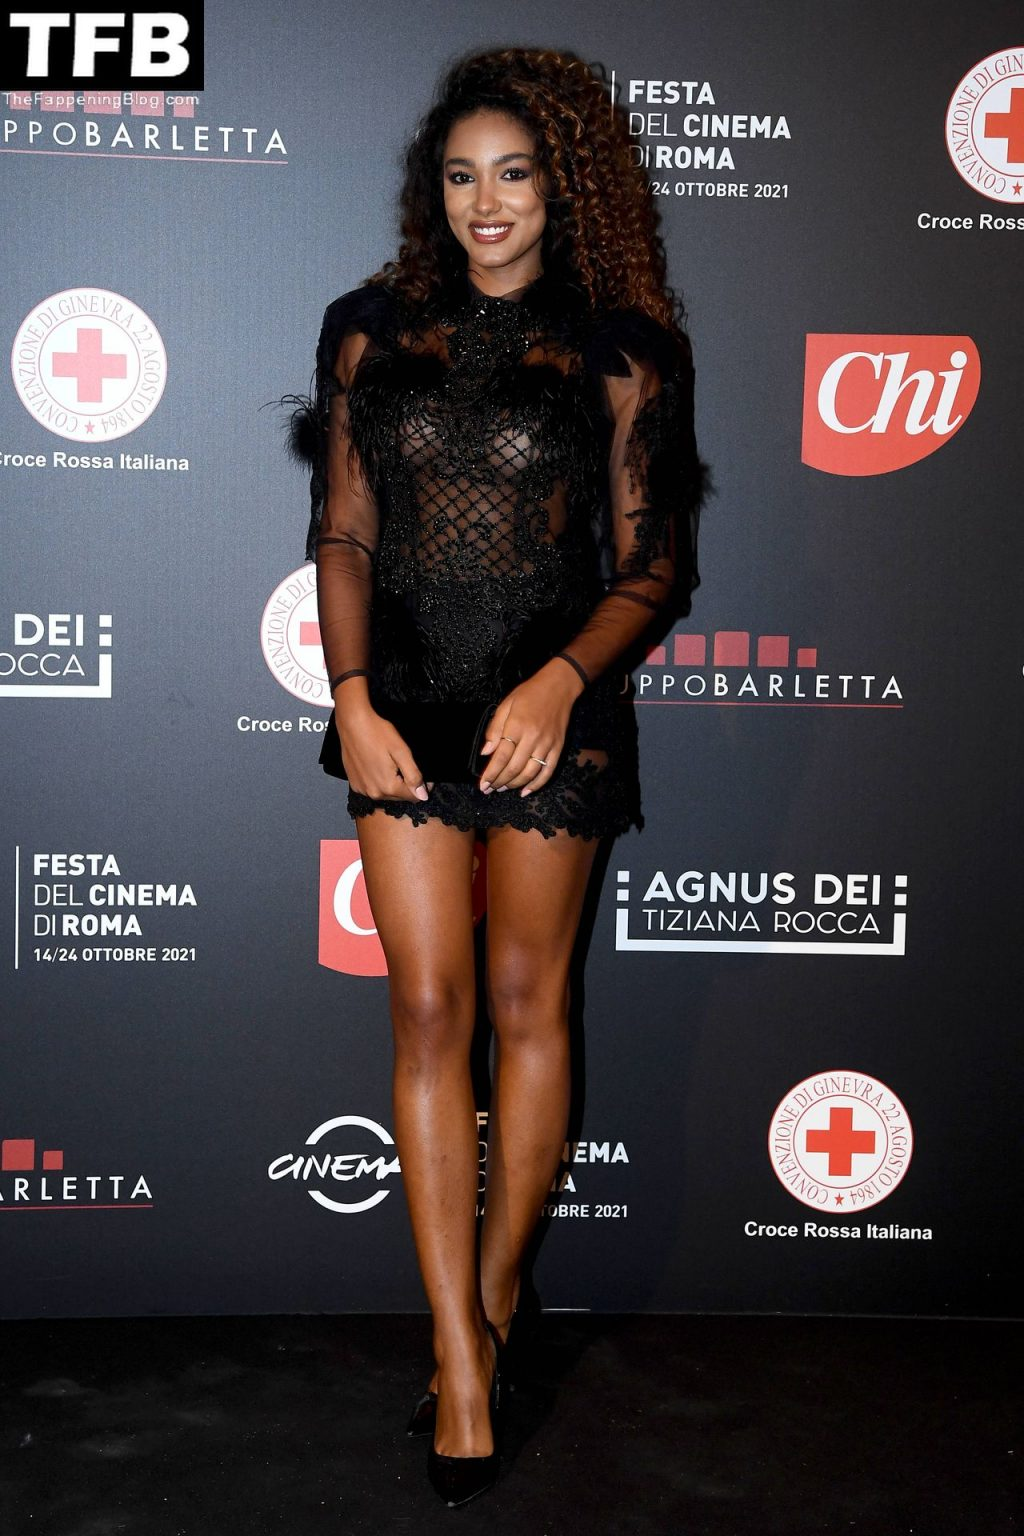 Samira Lui Flaunts Her Sexy Body in a See-Through Dress at the Rome Cinema Fest (10 Photos)